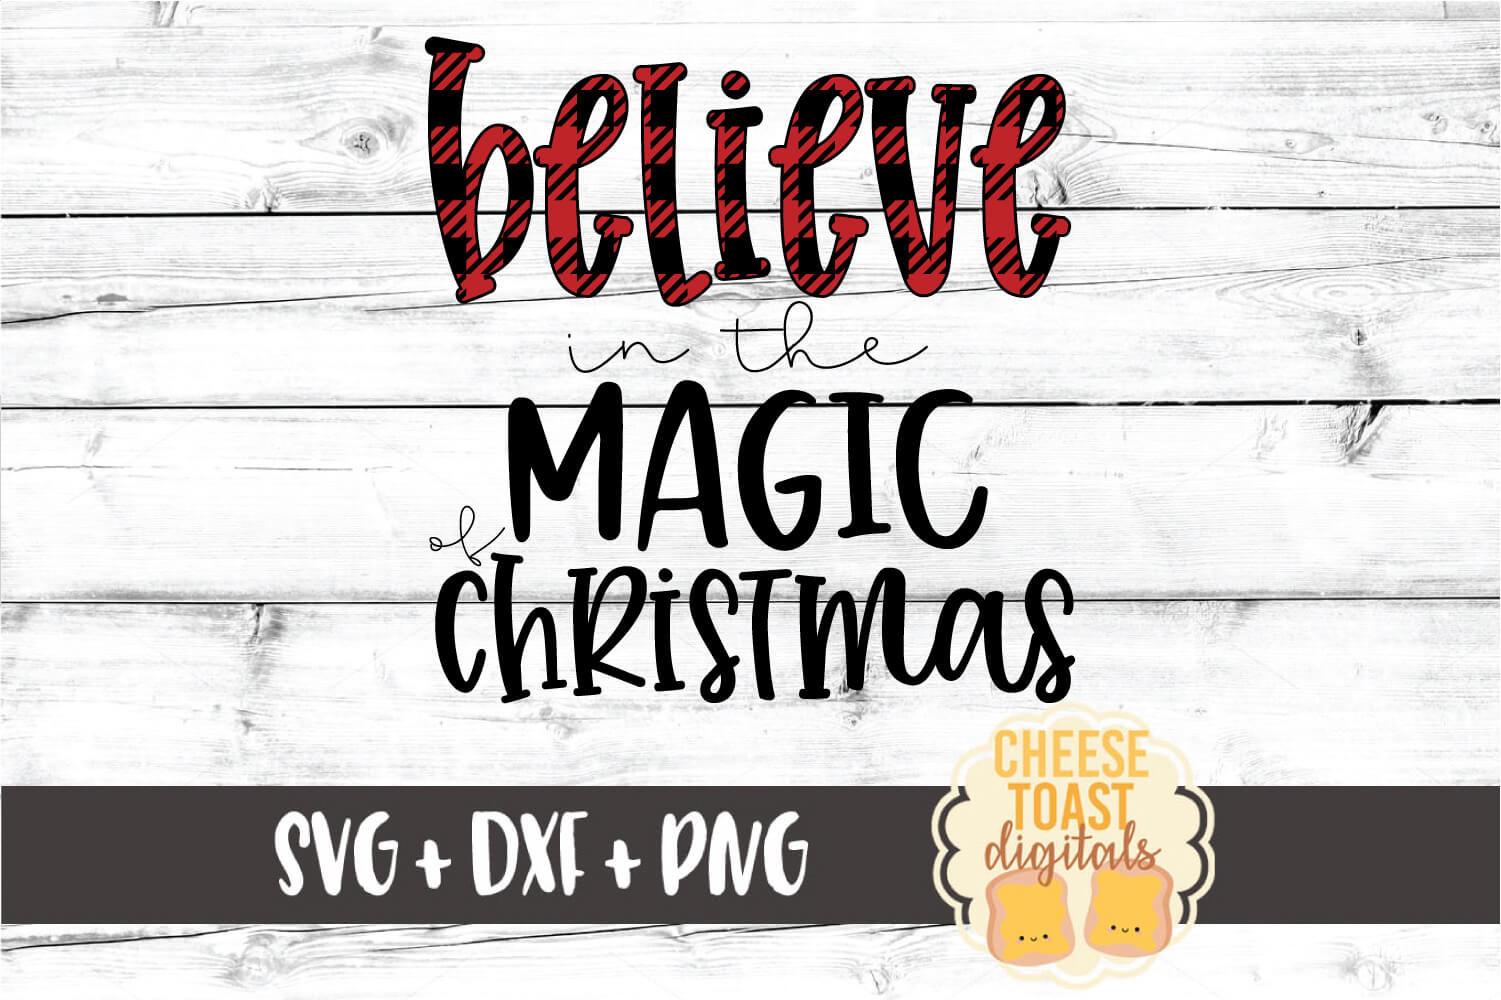 Believe In The Magic of Christmas SVG PNG DXF Cut Files example image 2